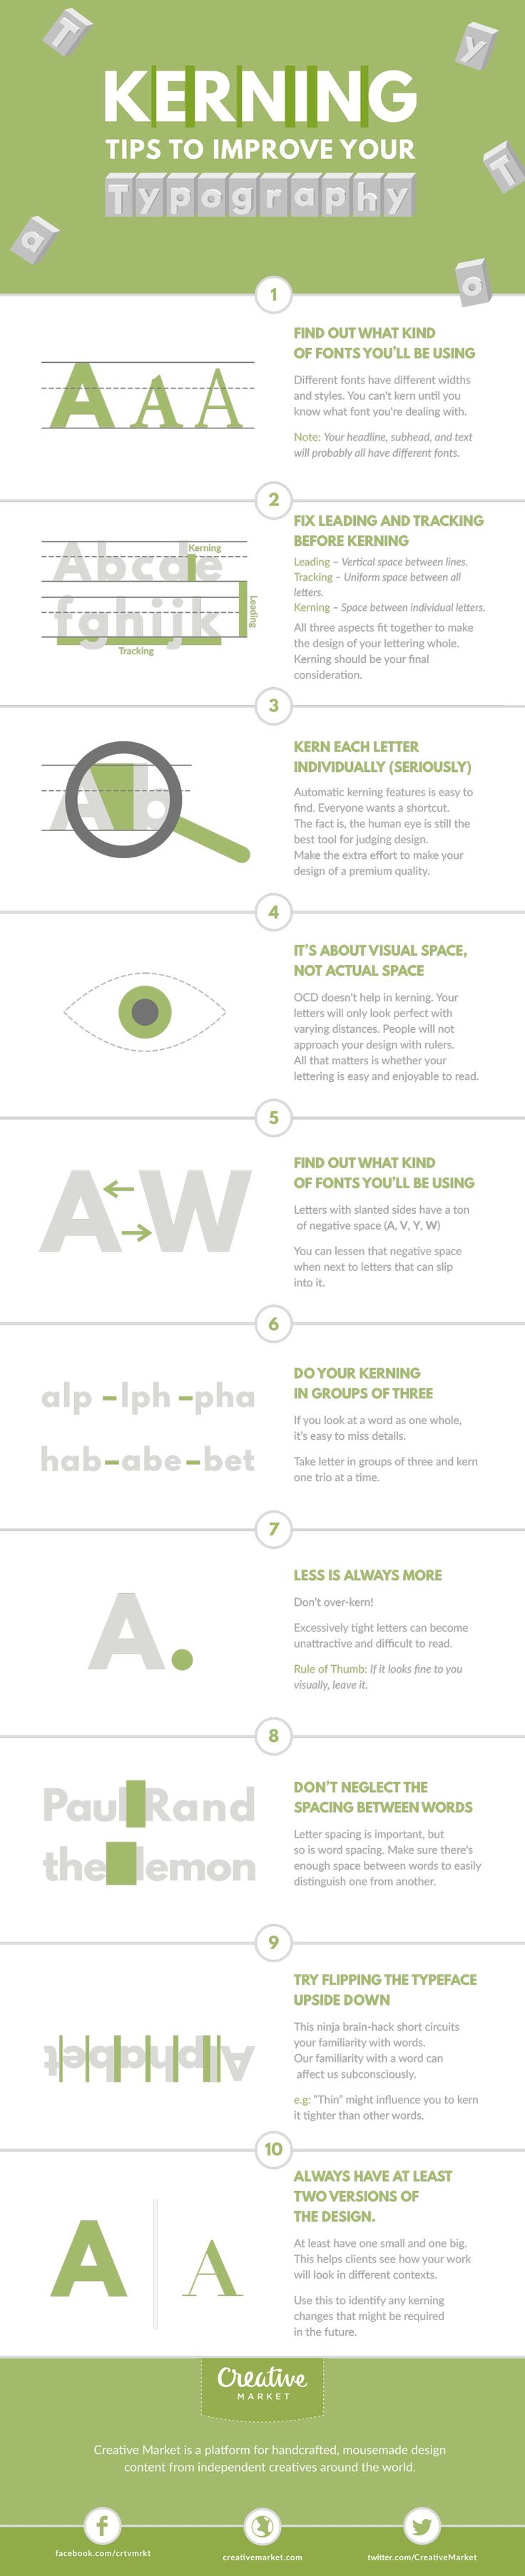 Infographic: Kerning Tips to Improve Your Typography